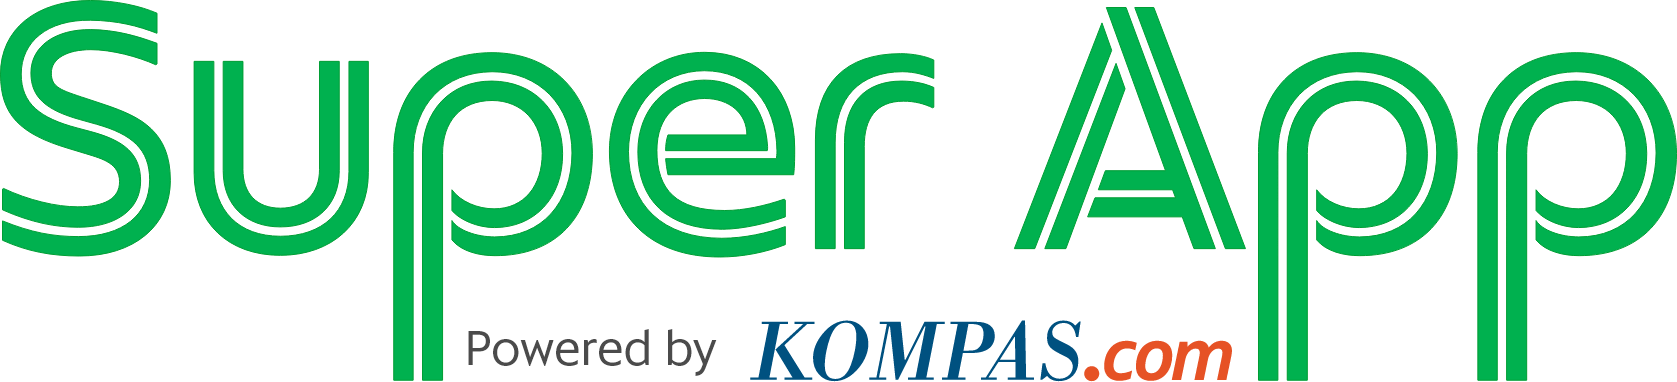 Grab Super App Powered by Kompas.com